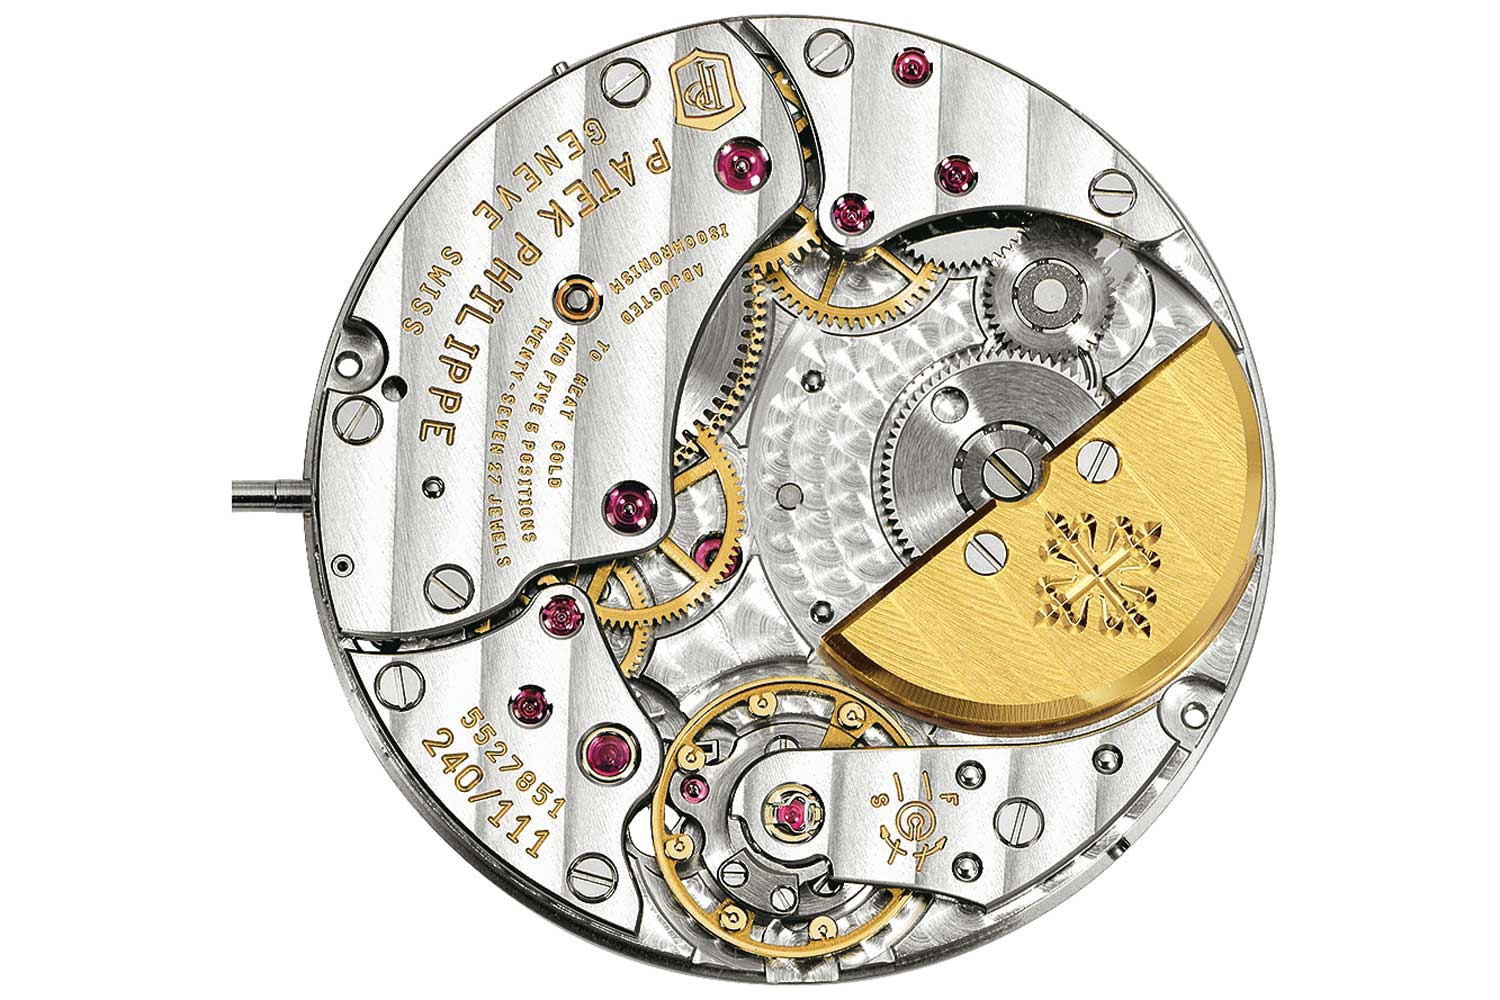 The mythical Patek Philippe caliber 240 launched in 1977